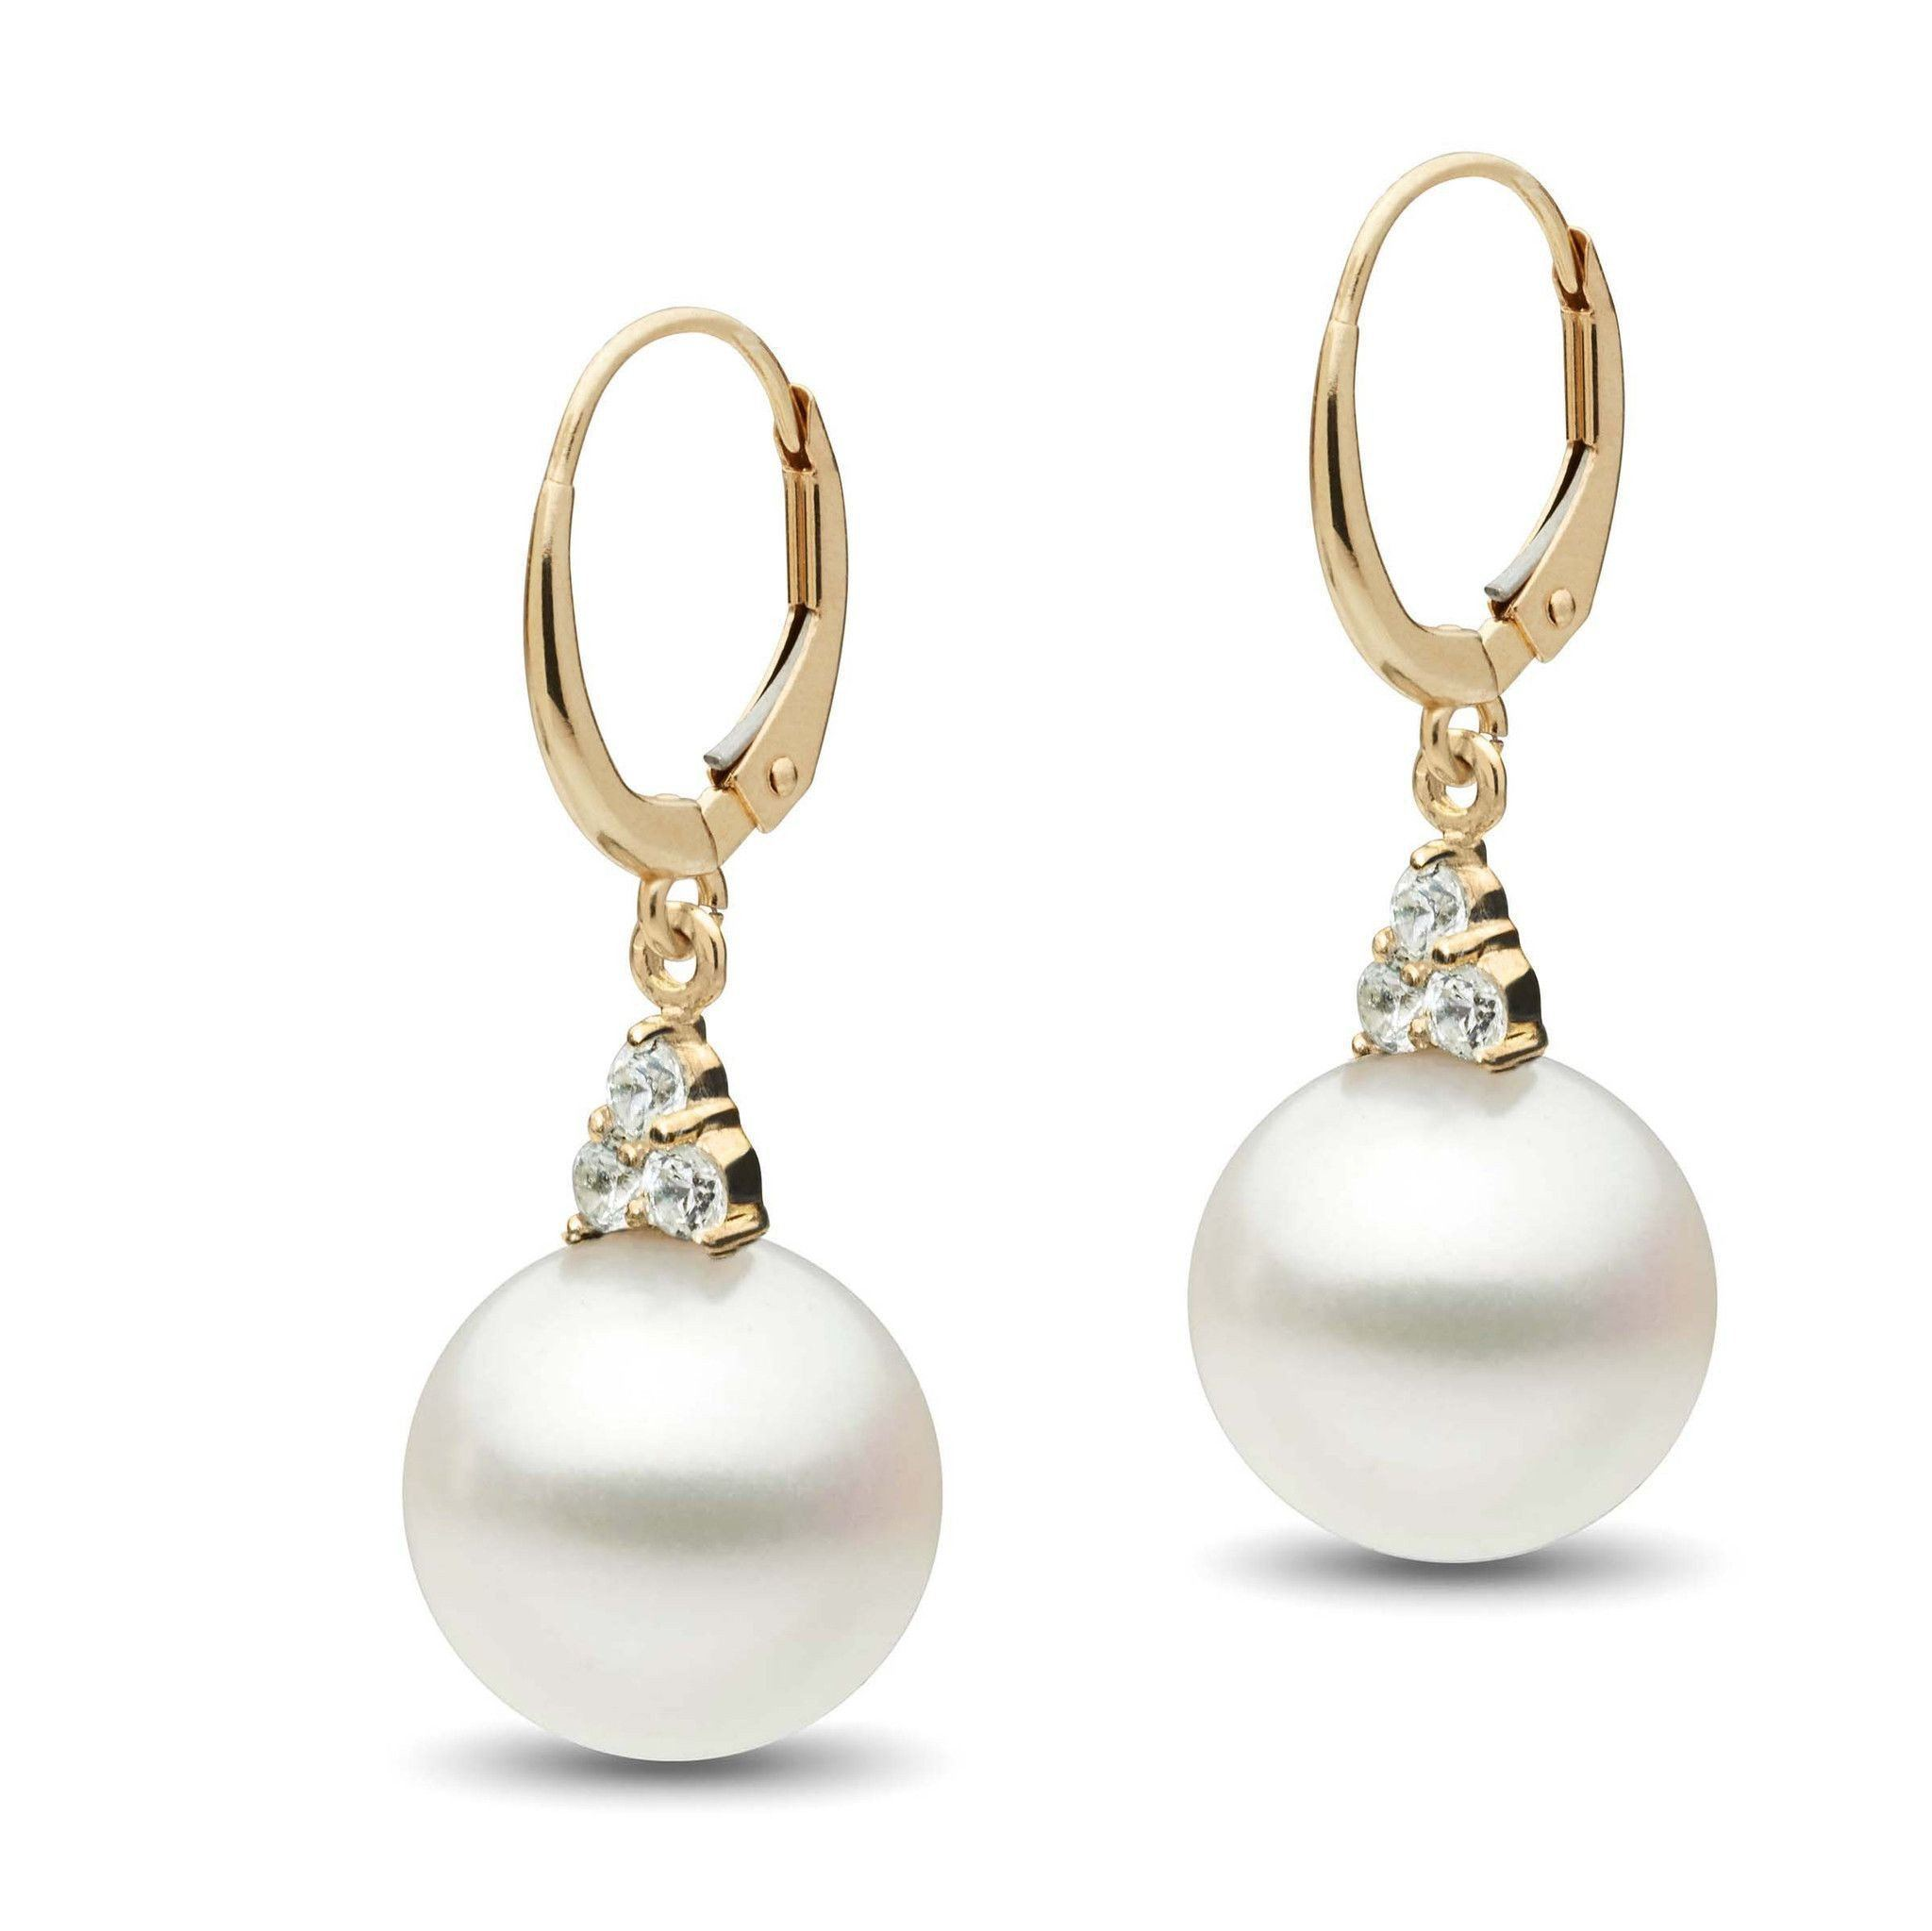 Always Collection White South Sea 11.0-12.0 mm Pearl and Diamond Earrings